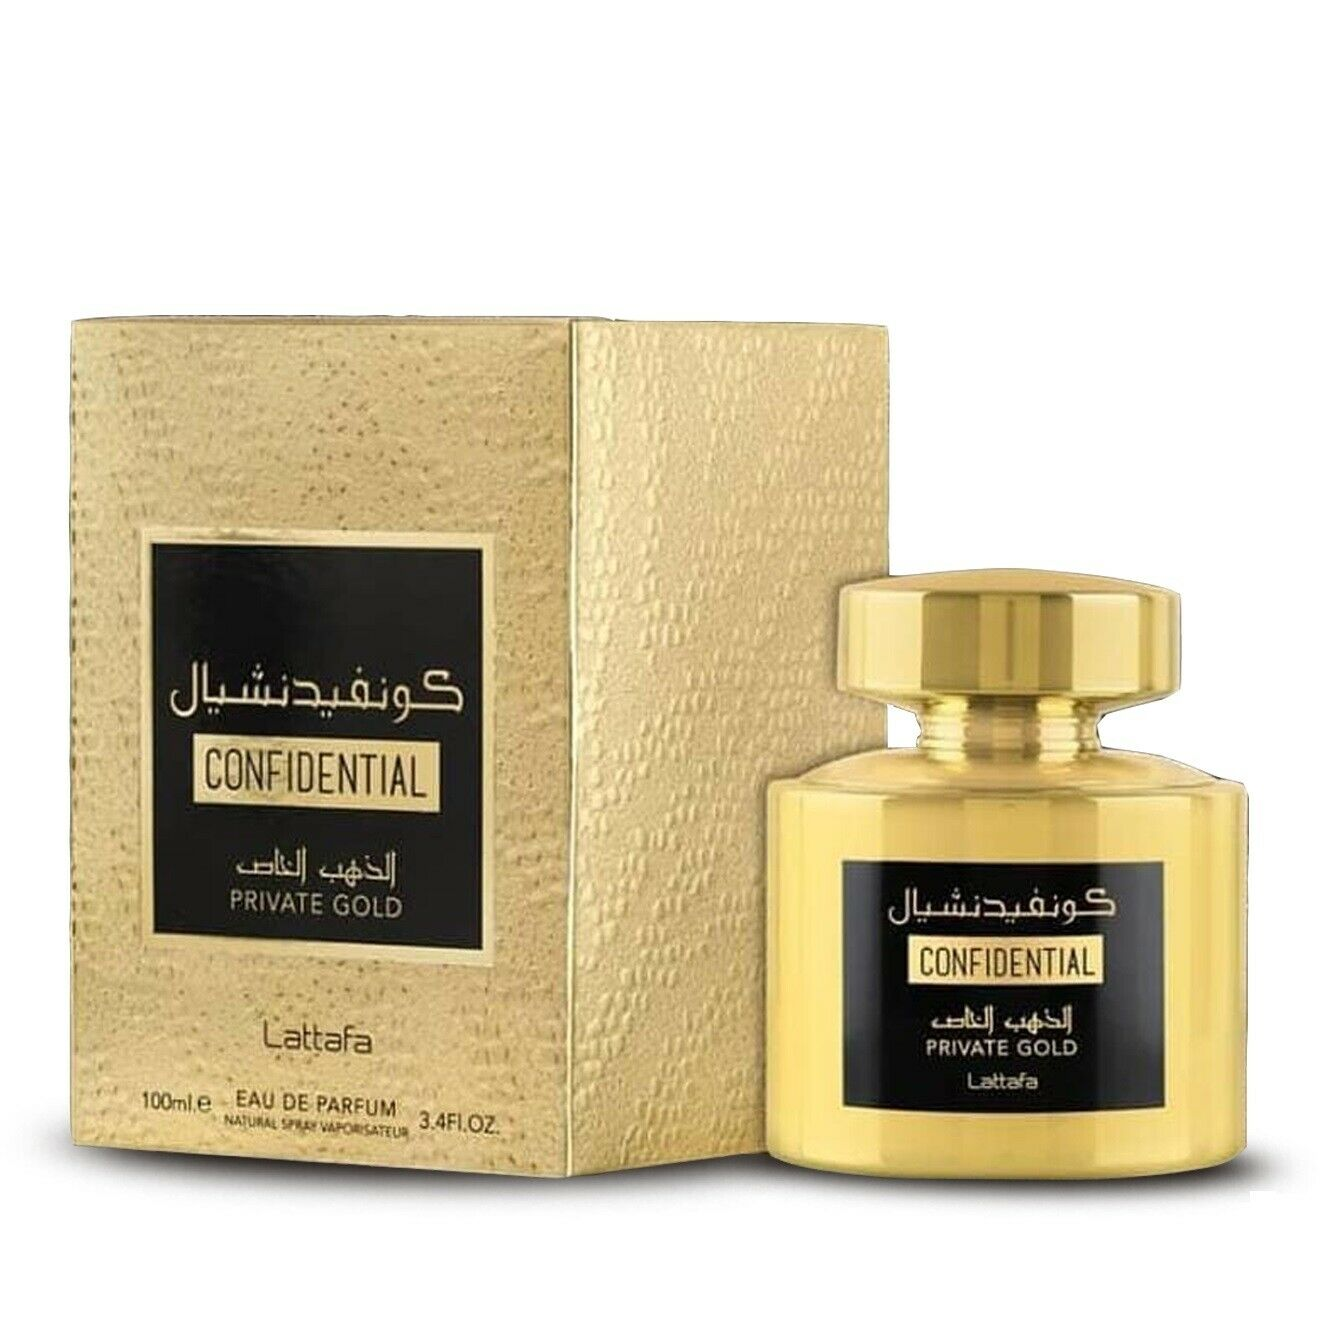 Confidential Private Gold - Eau De Parfum Spray (100 ml - 3.4Fl oz) by Lattafa